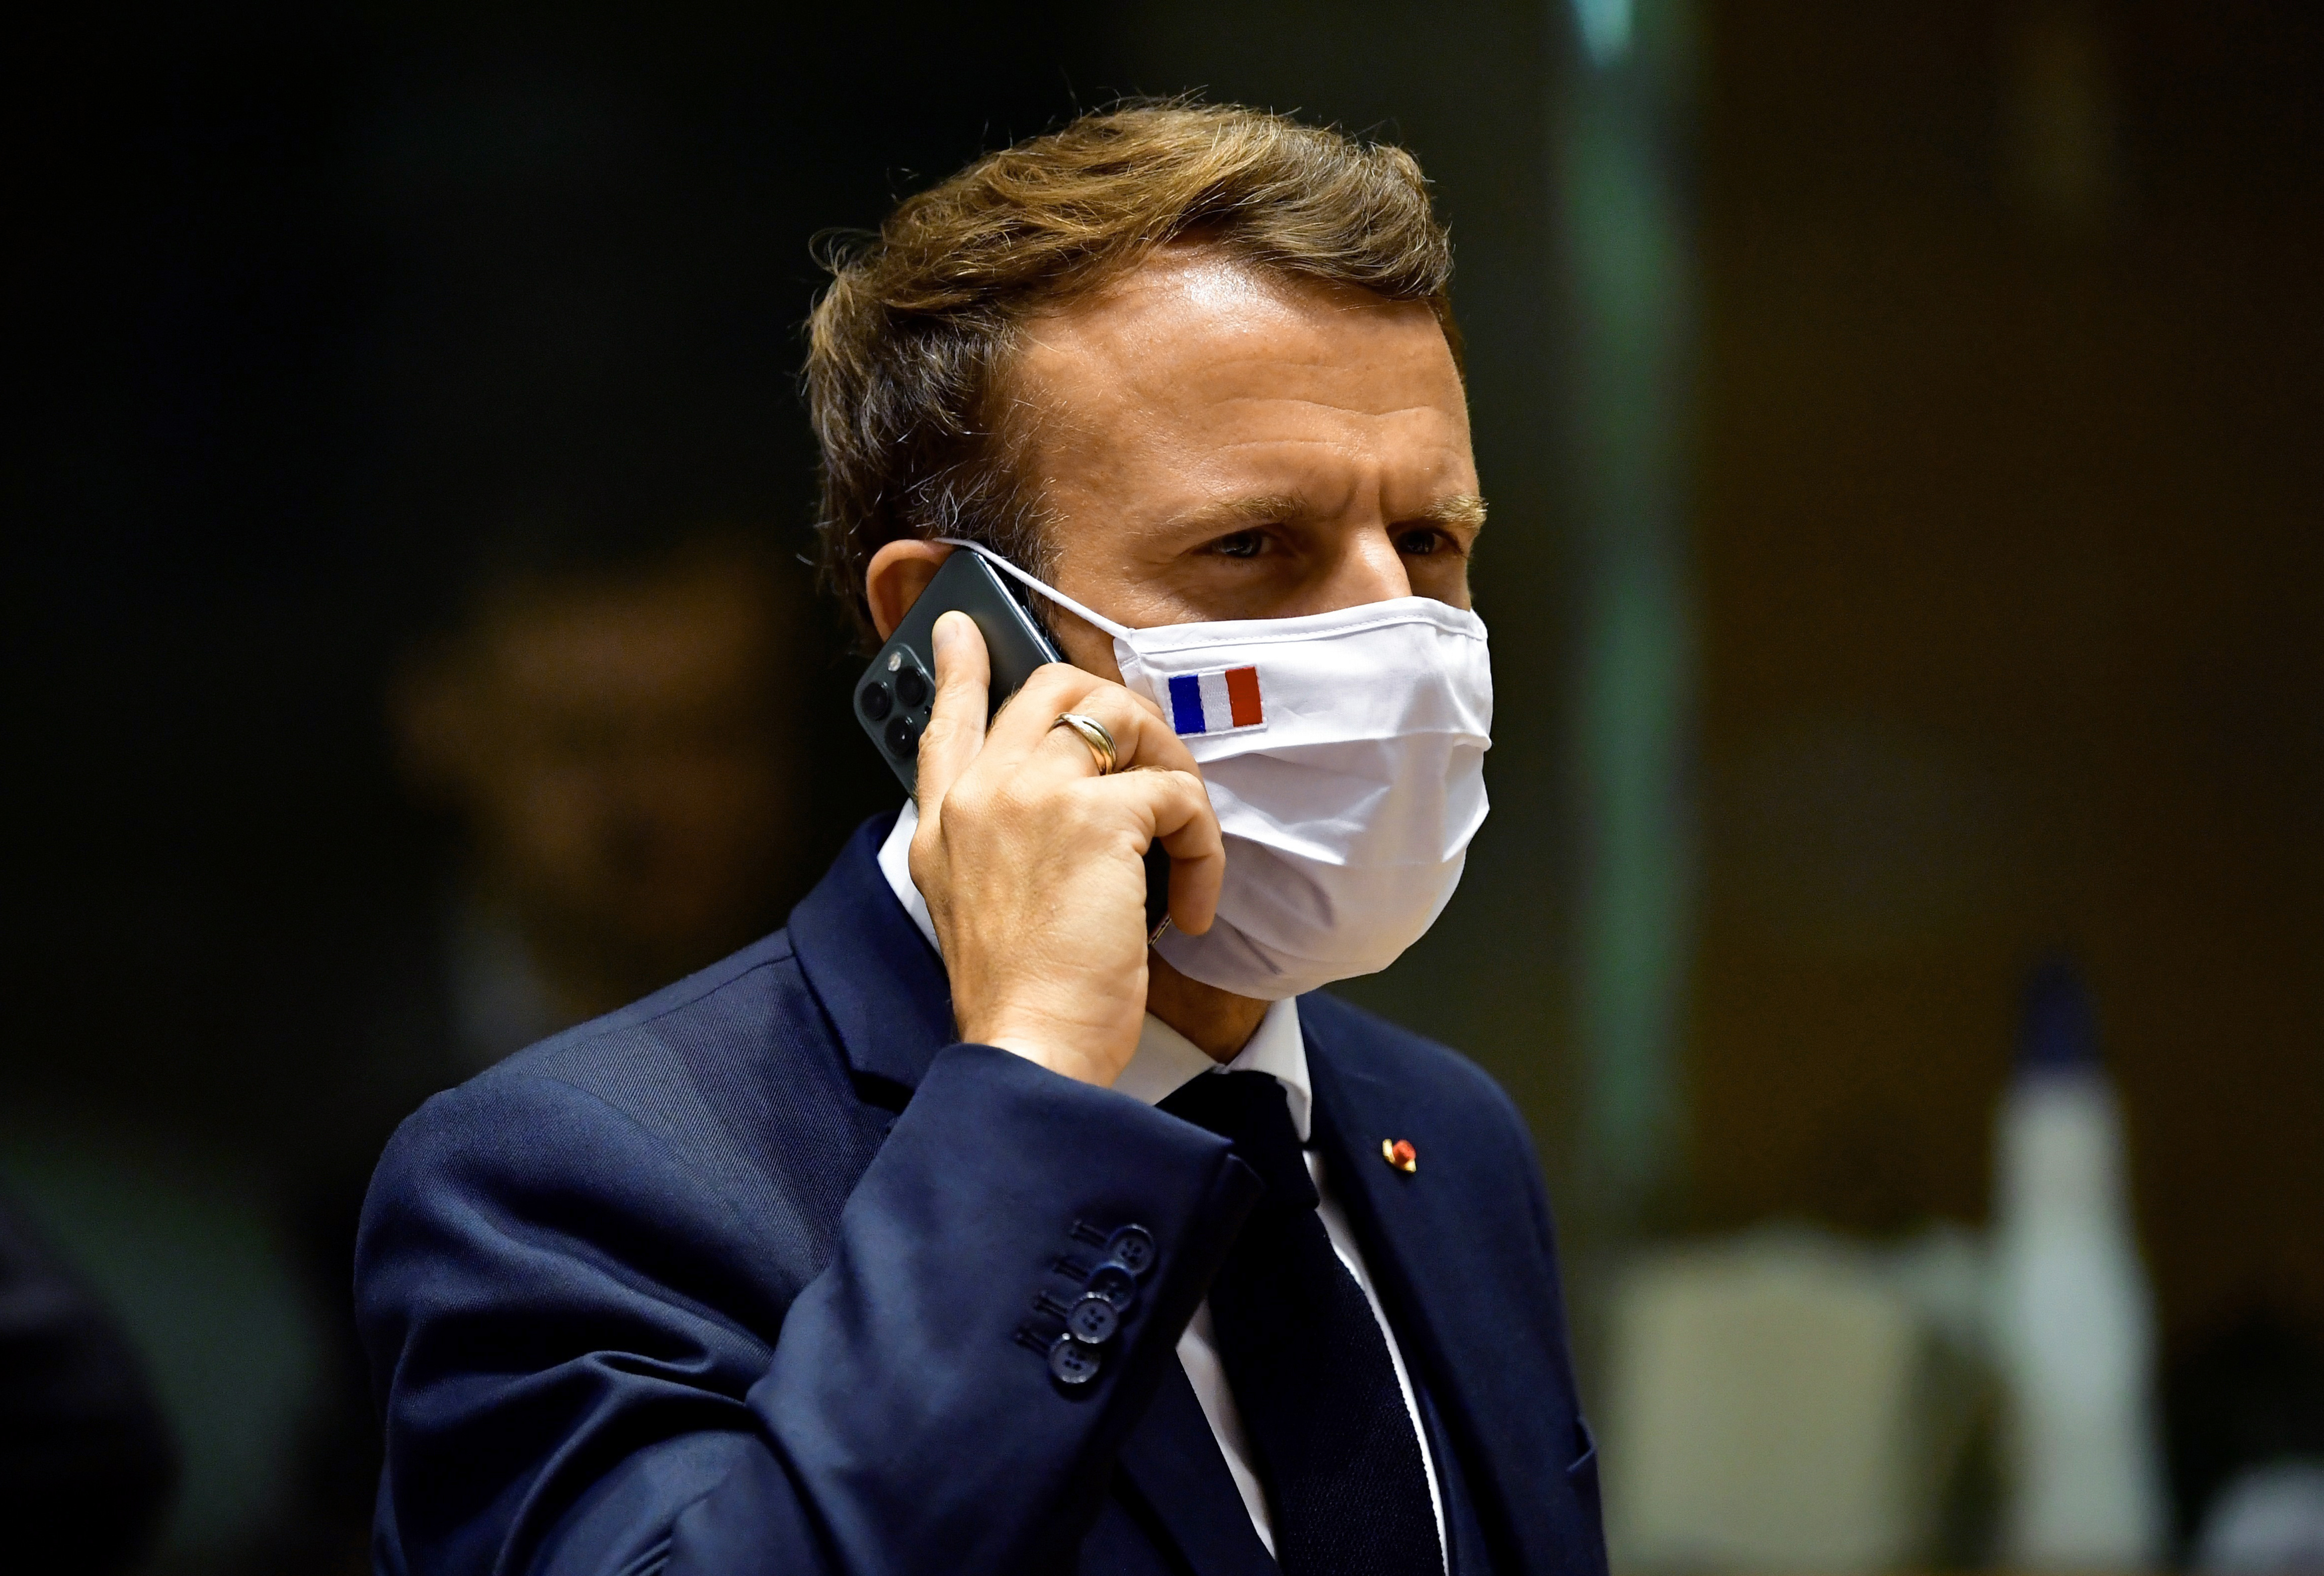 French President Emmanuel Macron speaks on his mobile phone during a round table meeting at an EU summit in Brussels on July 20, 2020.